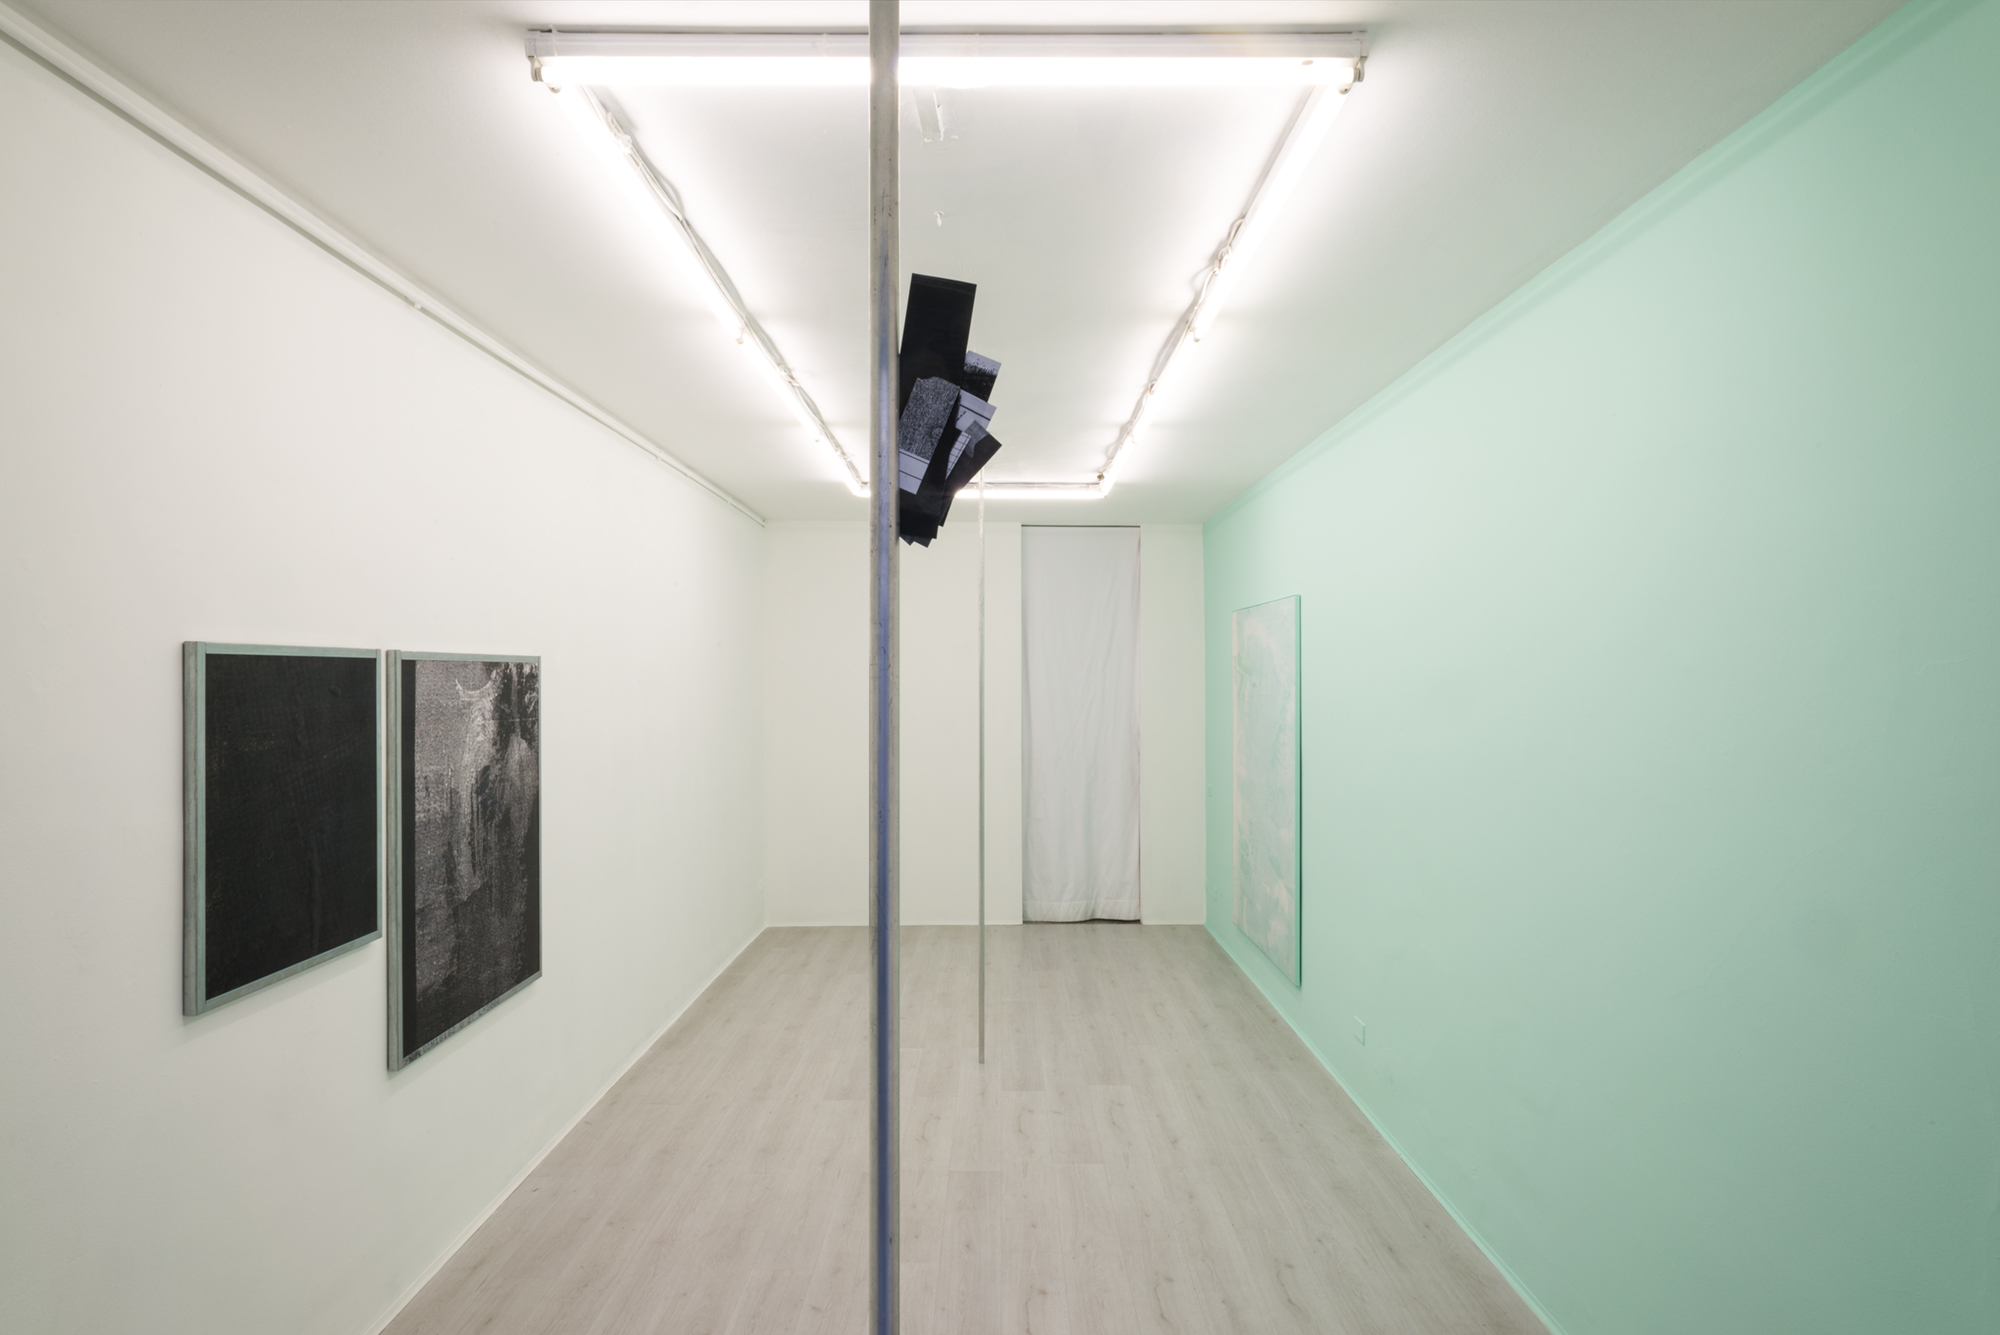 2. Manor Grunewald hang in there exhibition view